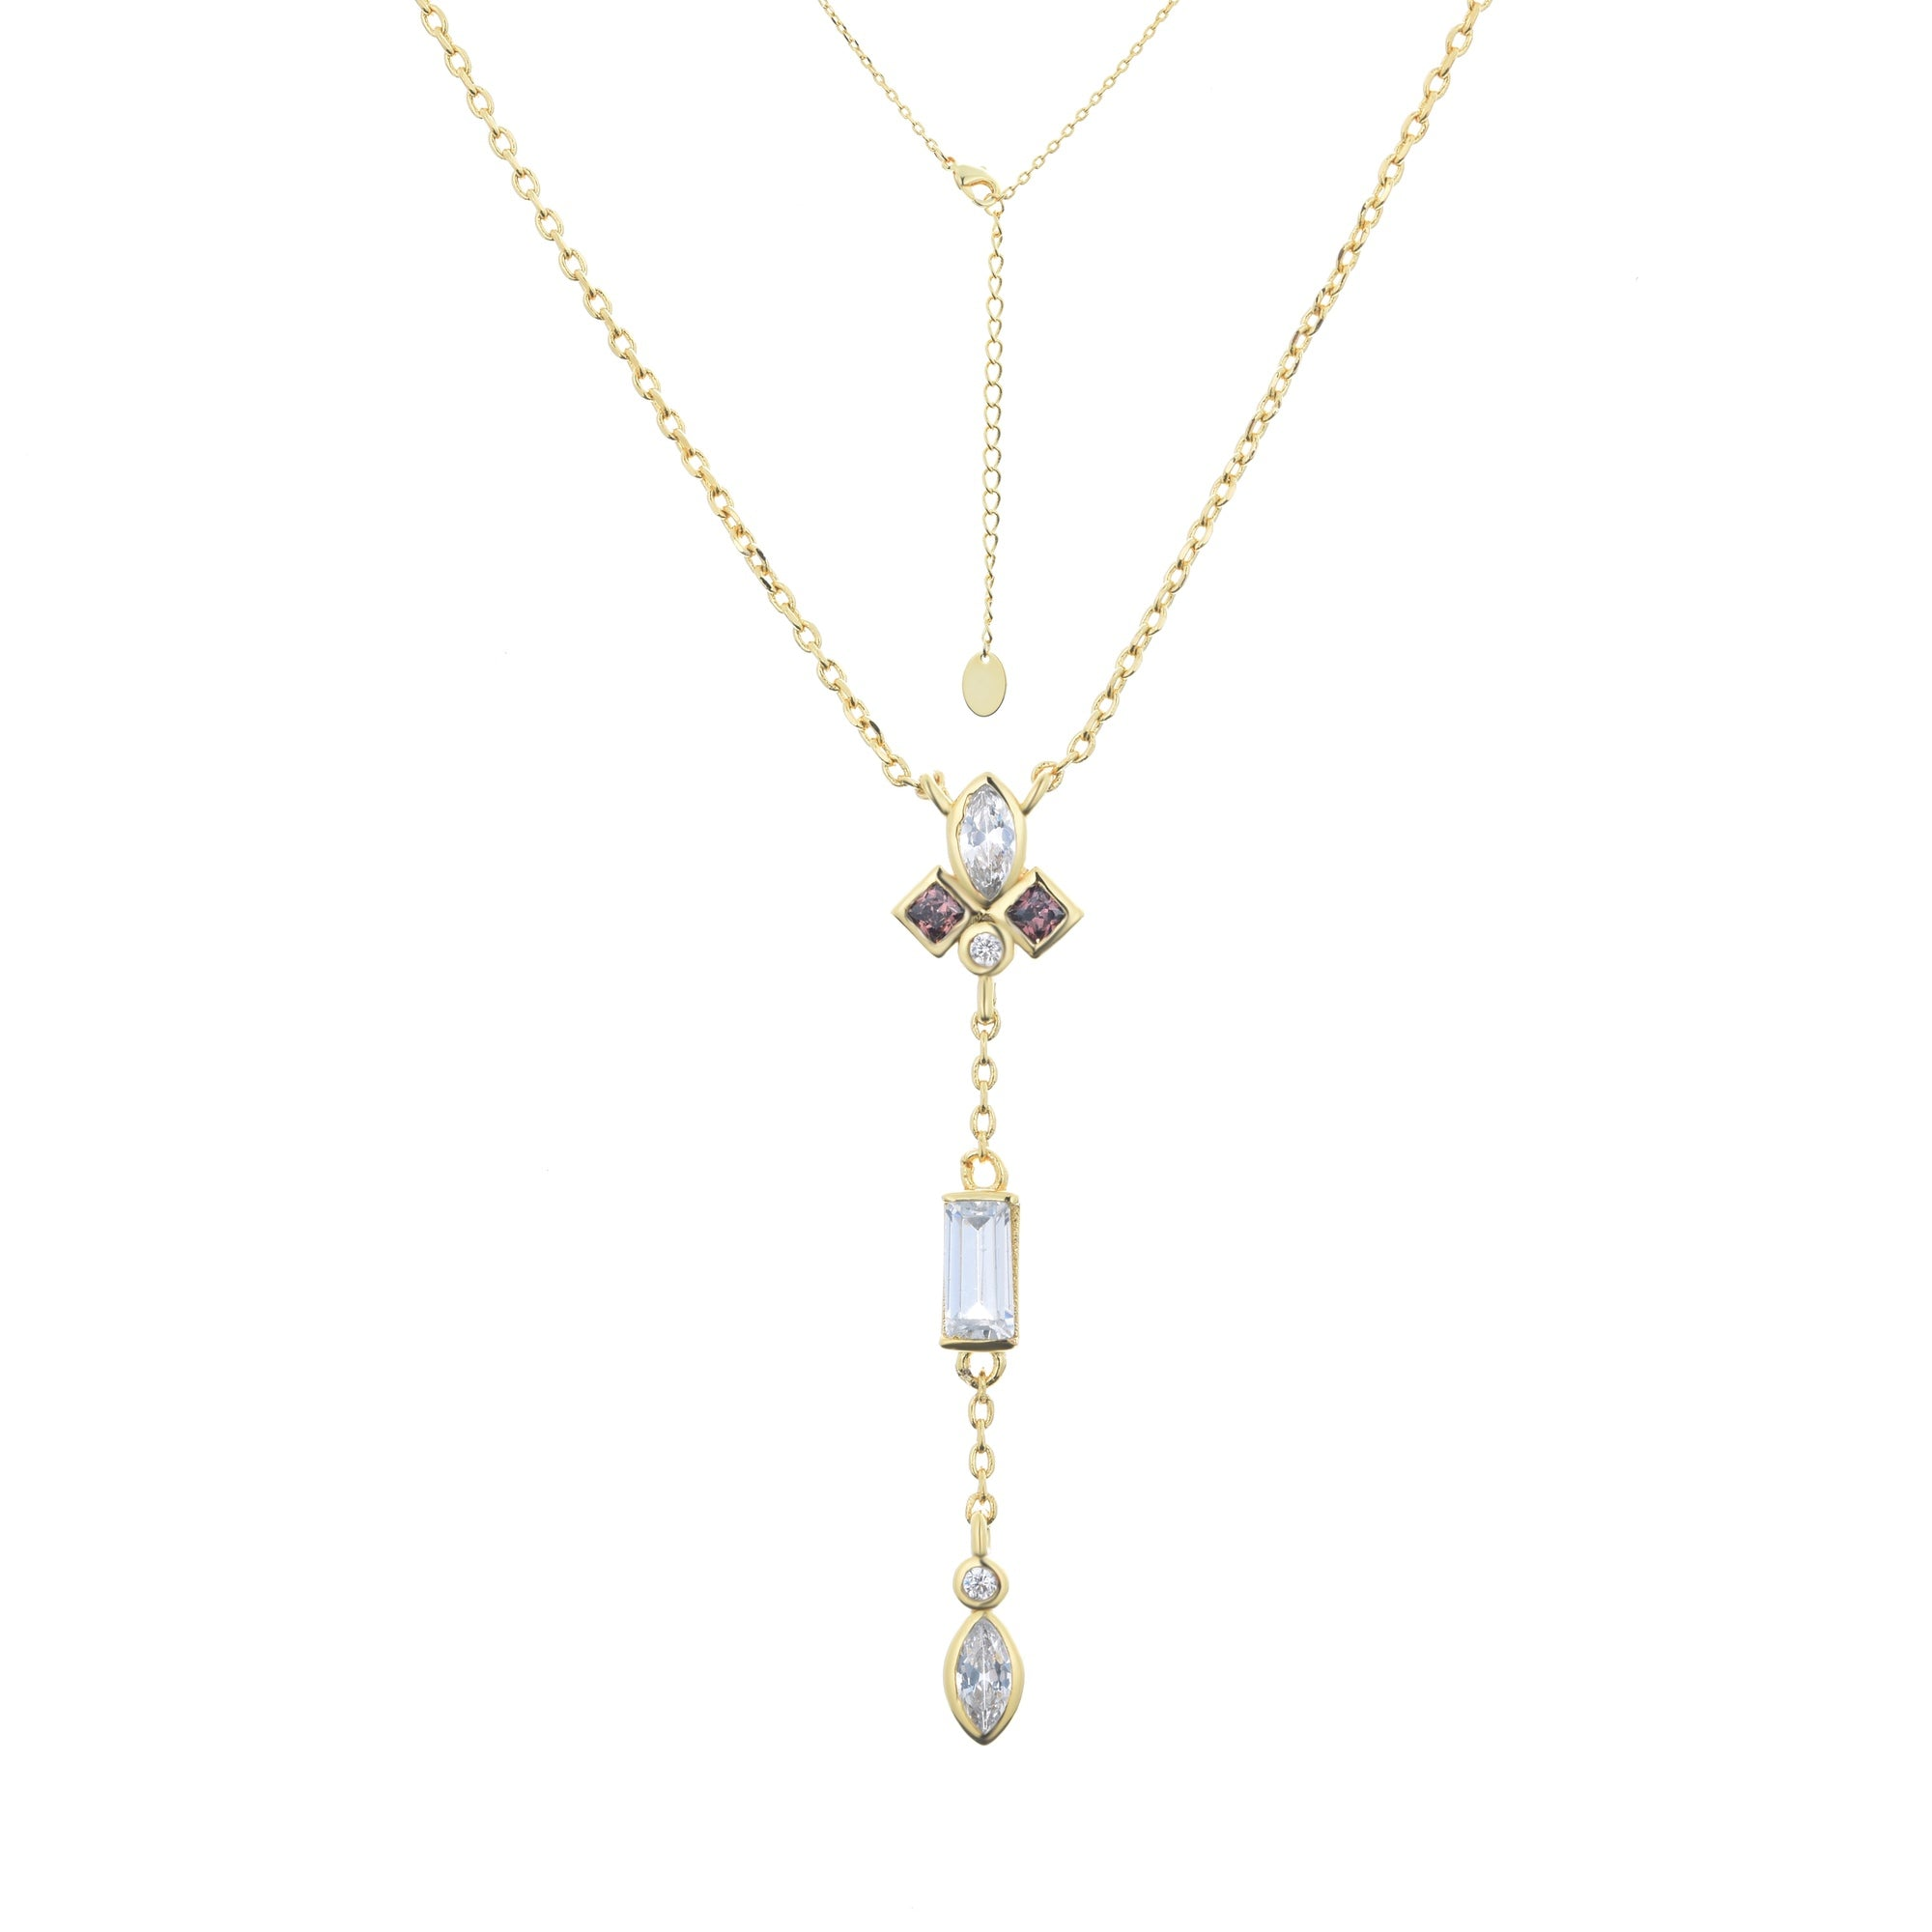 Ferentina | Panettone Necklace | 925 Silver | White & Smokey CZ | 18K Gold Plated